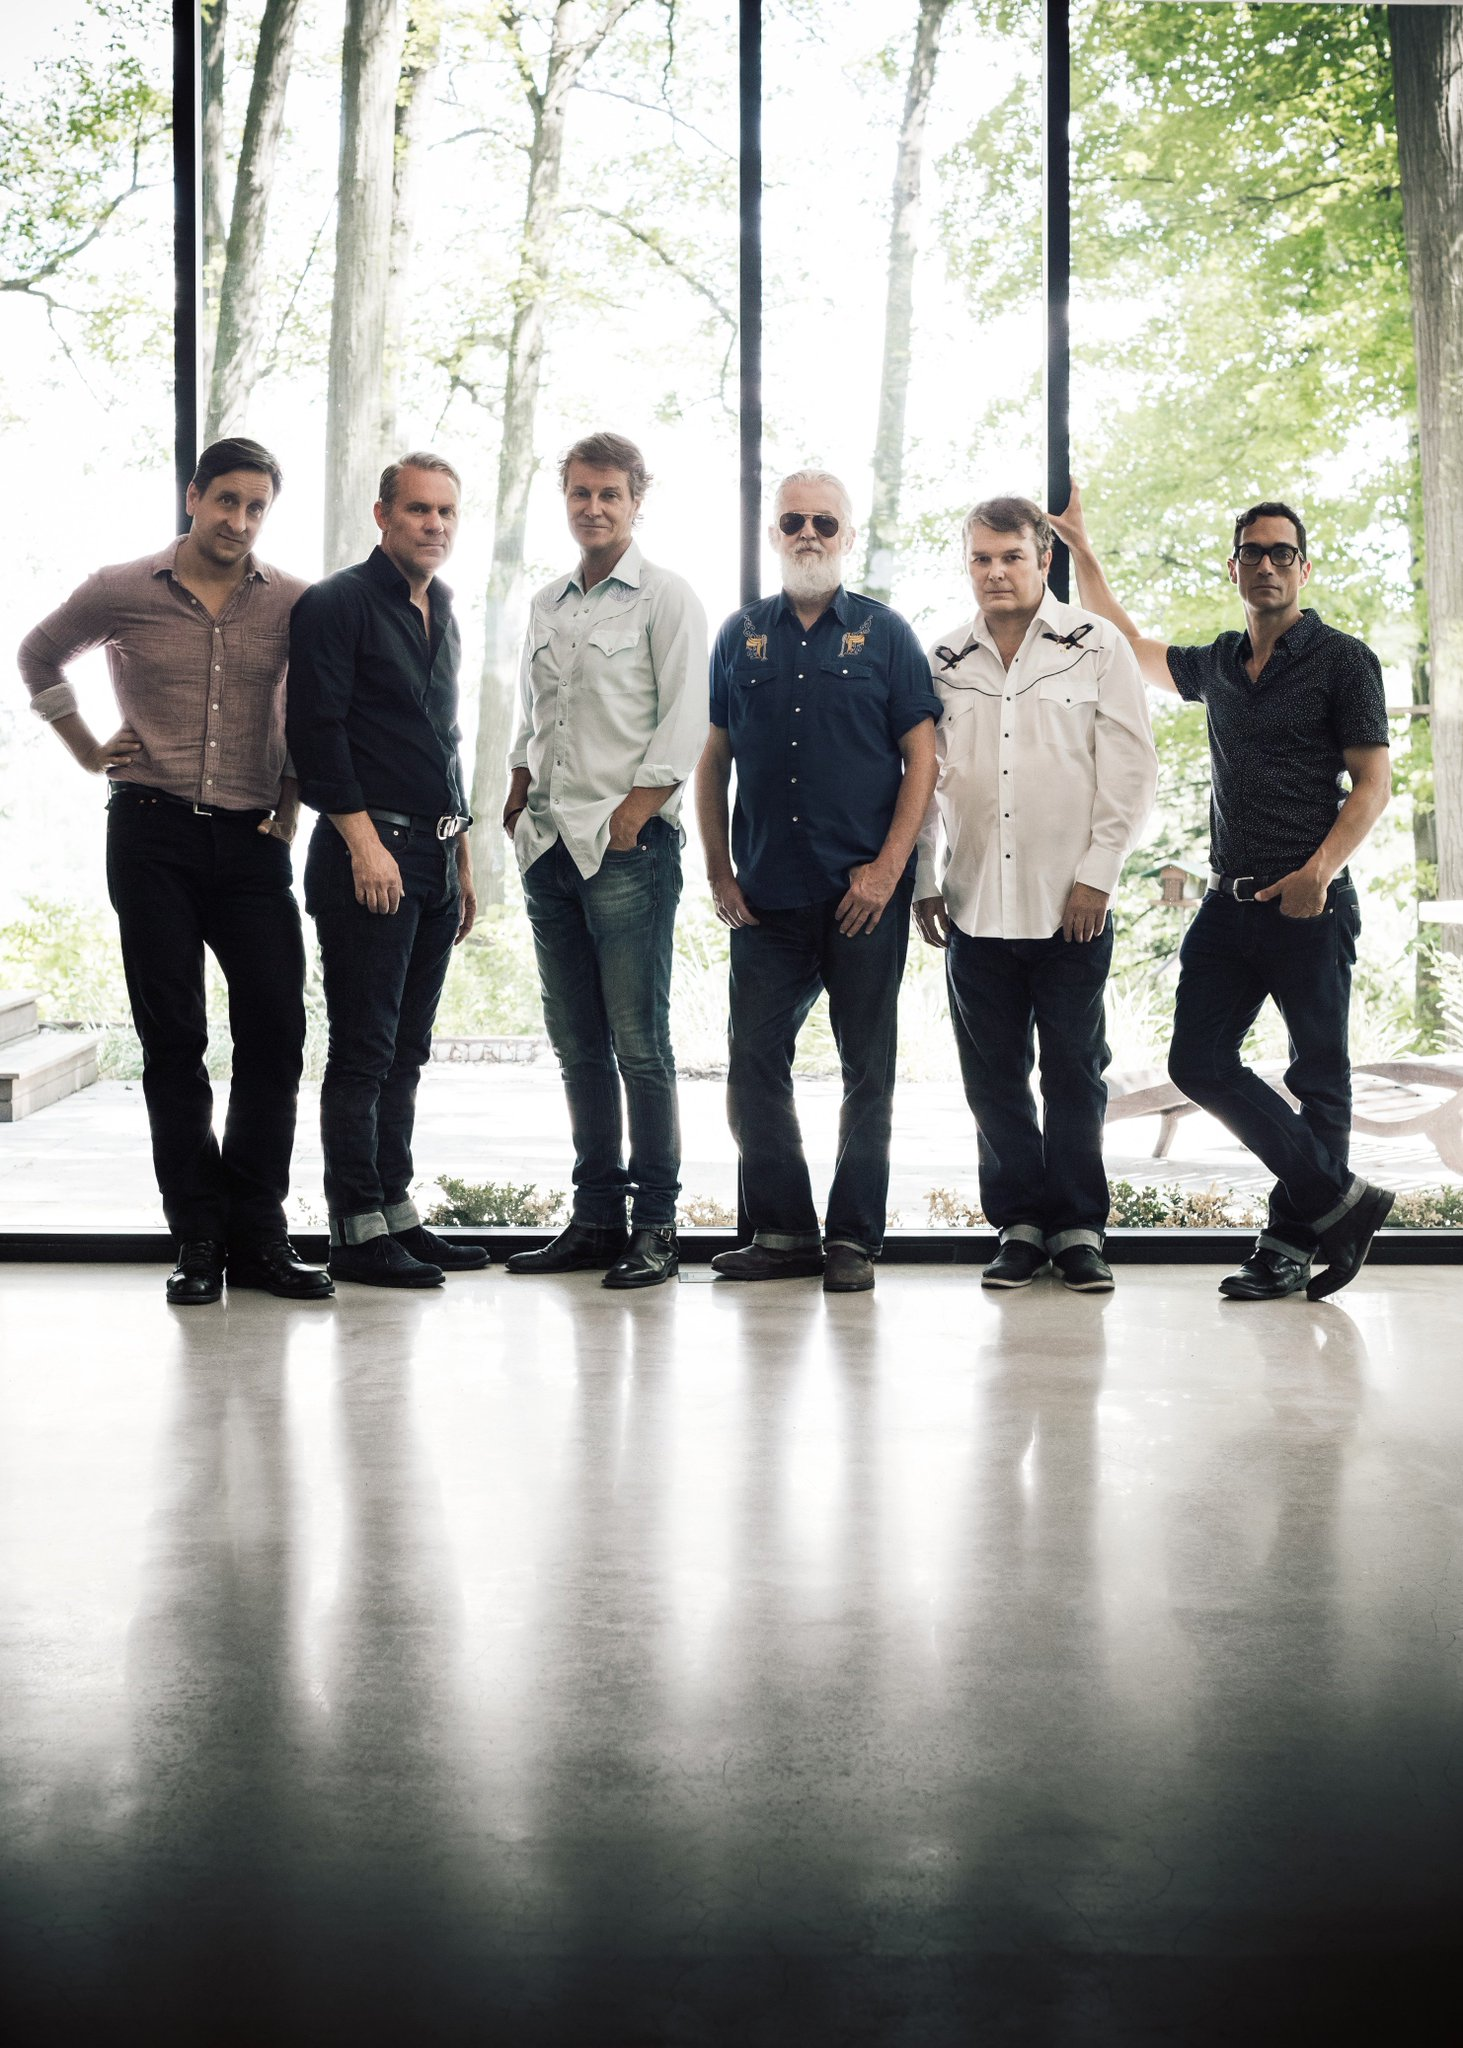 Get your presale tickets now for @BlueRodeo + guests on August 19 with code SOUNDCHECK -> https://t.co/4twYdtFurz https://t.co/wEM3Iybtu8